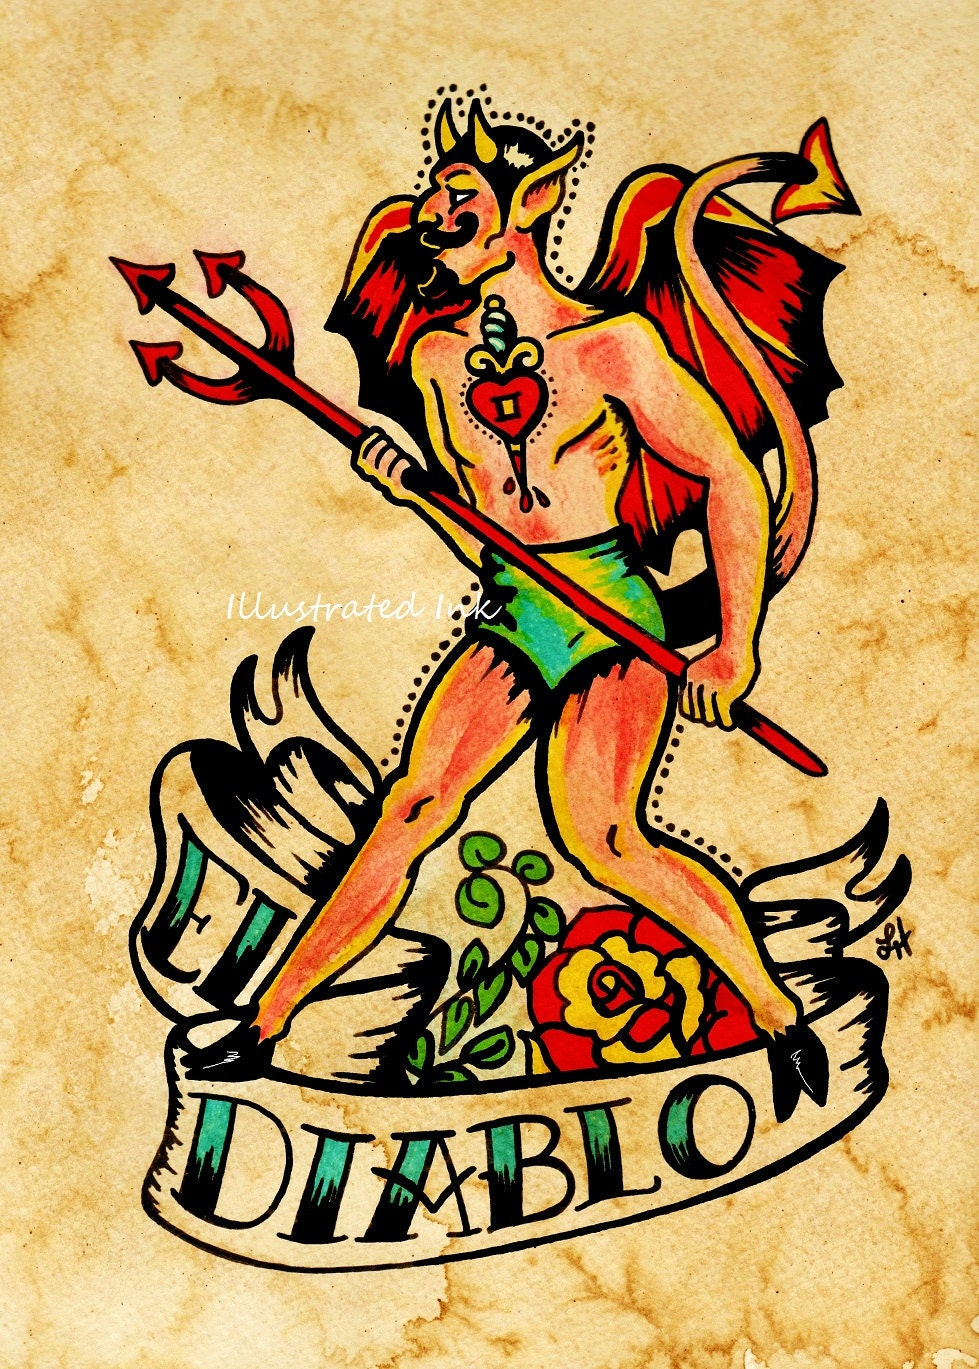 Old School Tattoo Devil Art El DIABLO Loteria Print 5 X 7 8